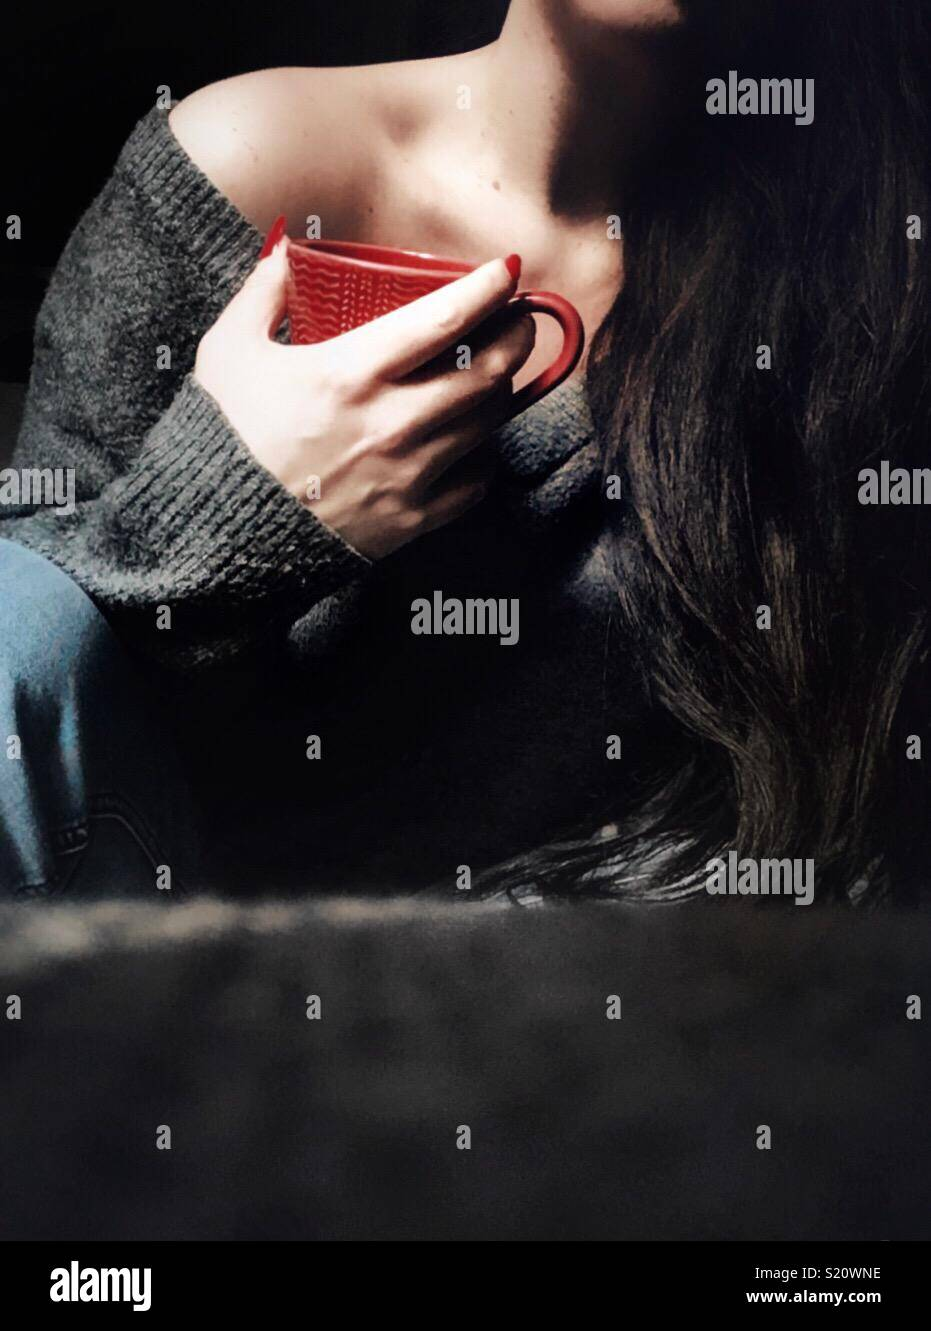 Woman with long dark hair holding a red cup - Stock Image